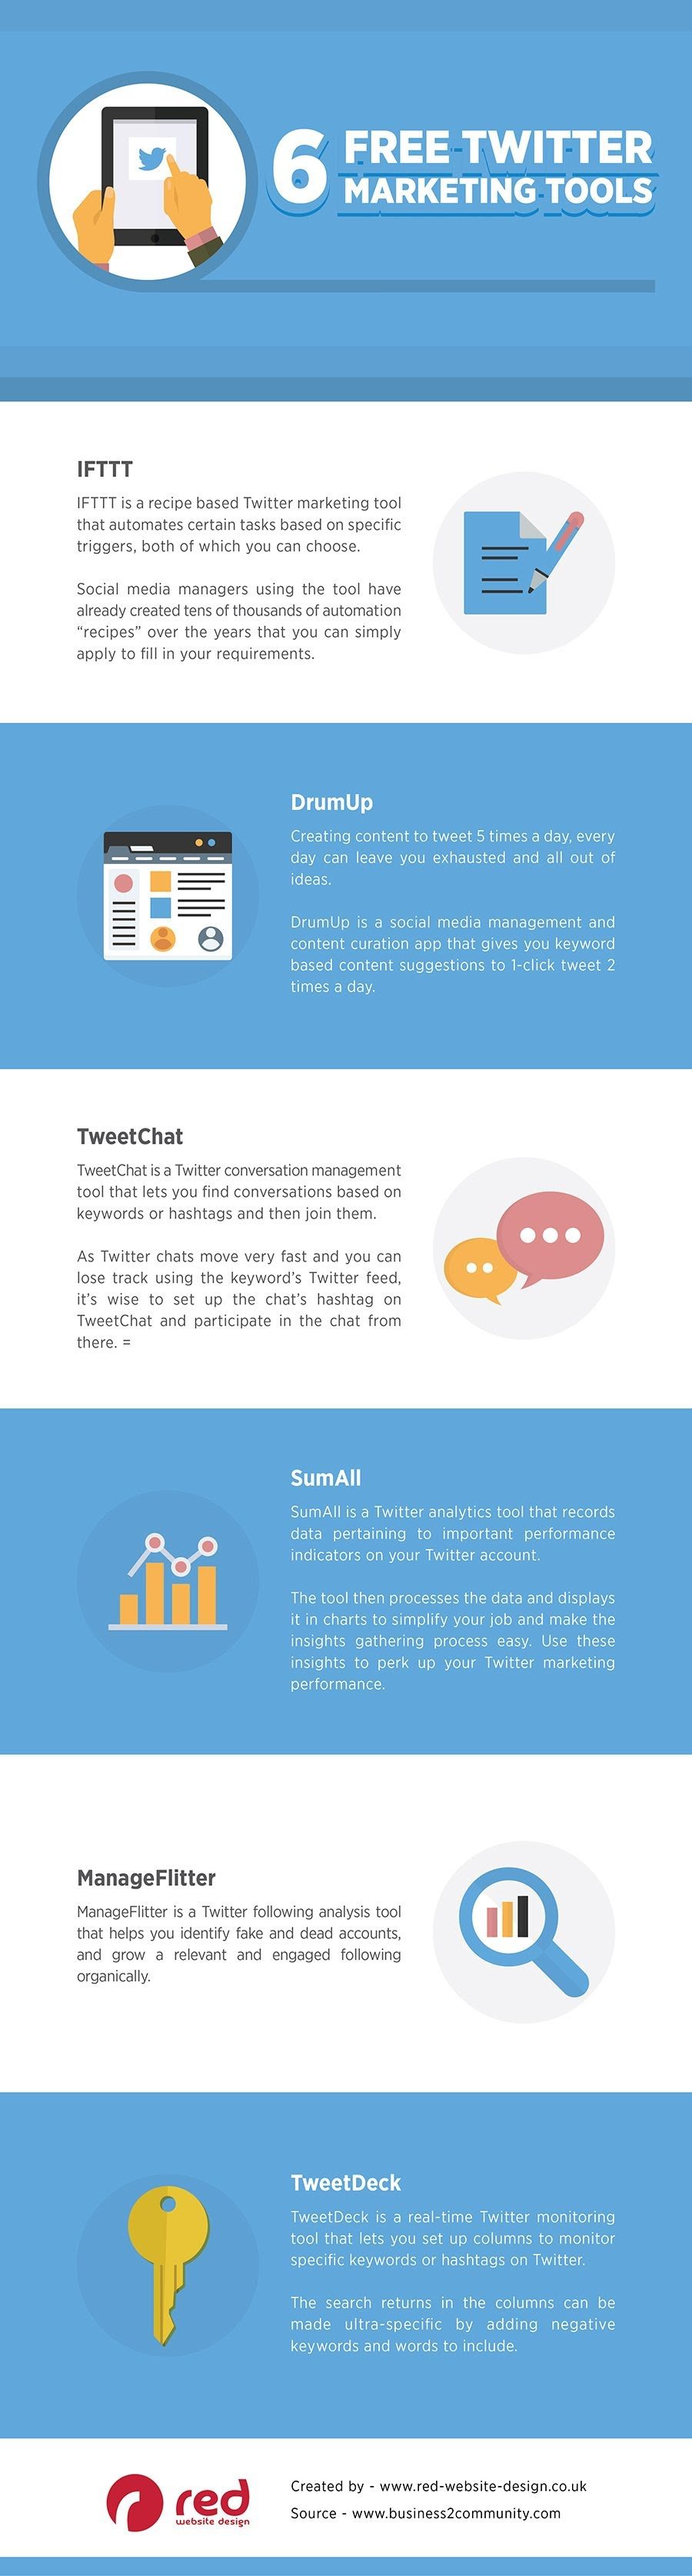 6 Free Twitter Marketing Tools - #Infographic